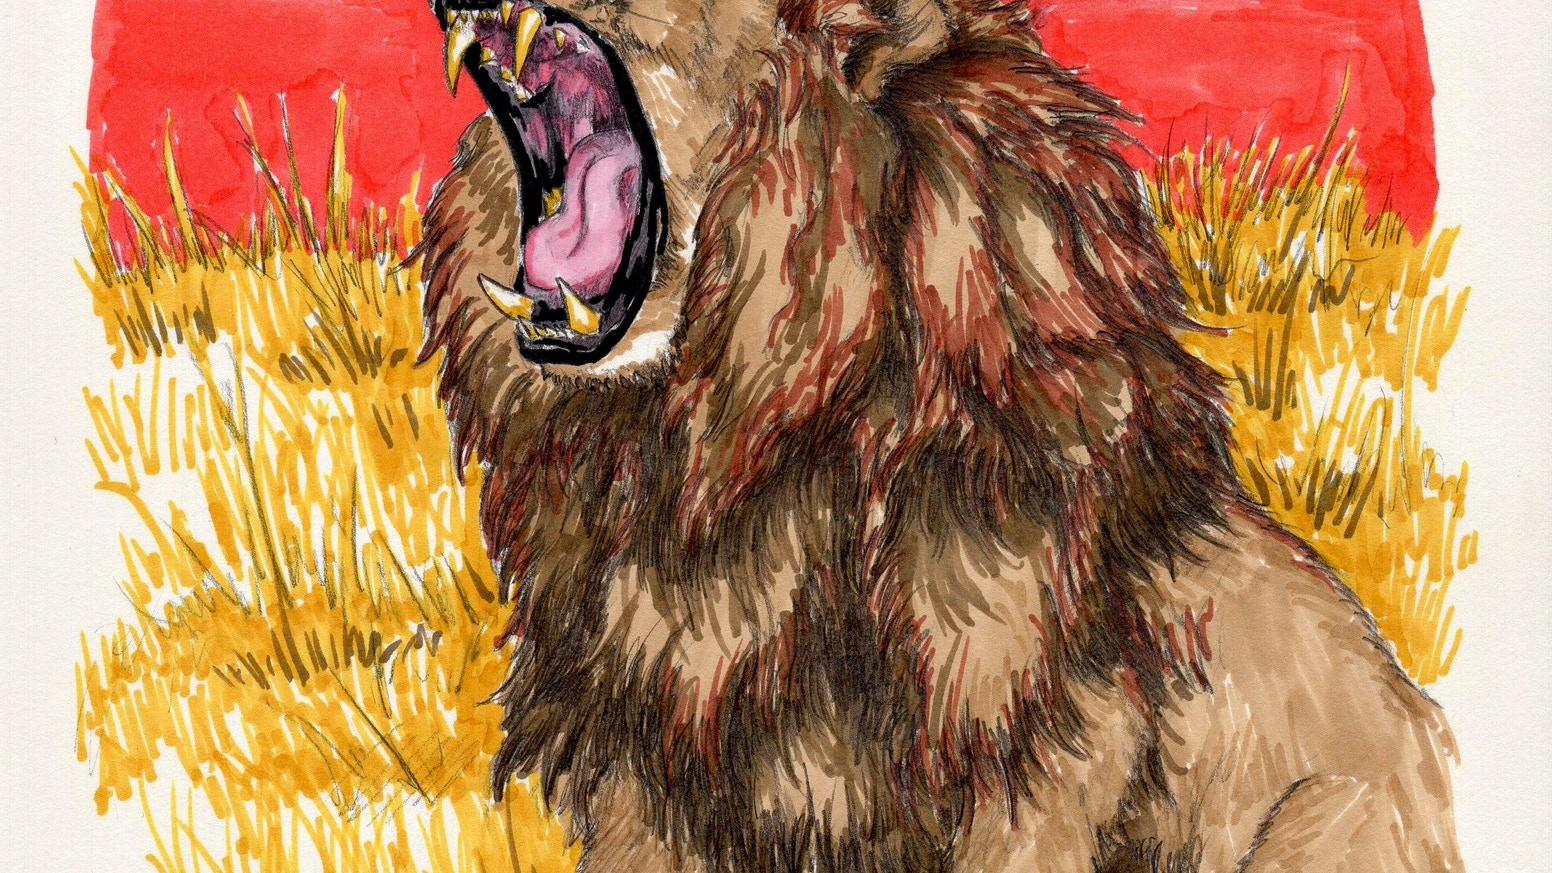 aad37195 I'd Punch a Lion in His Eye for You - Children's Book by Ben Wolf ...